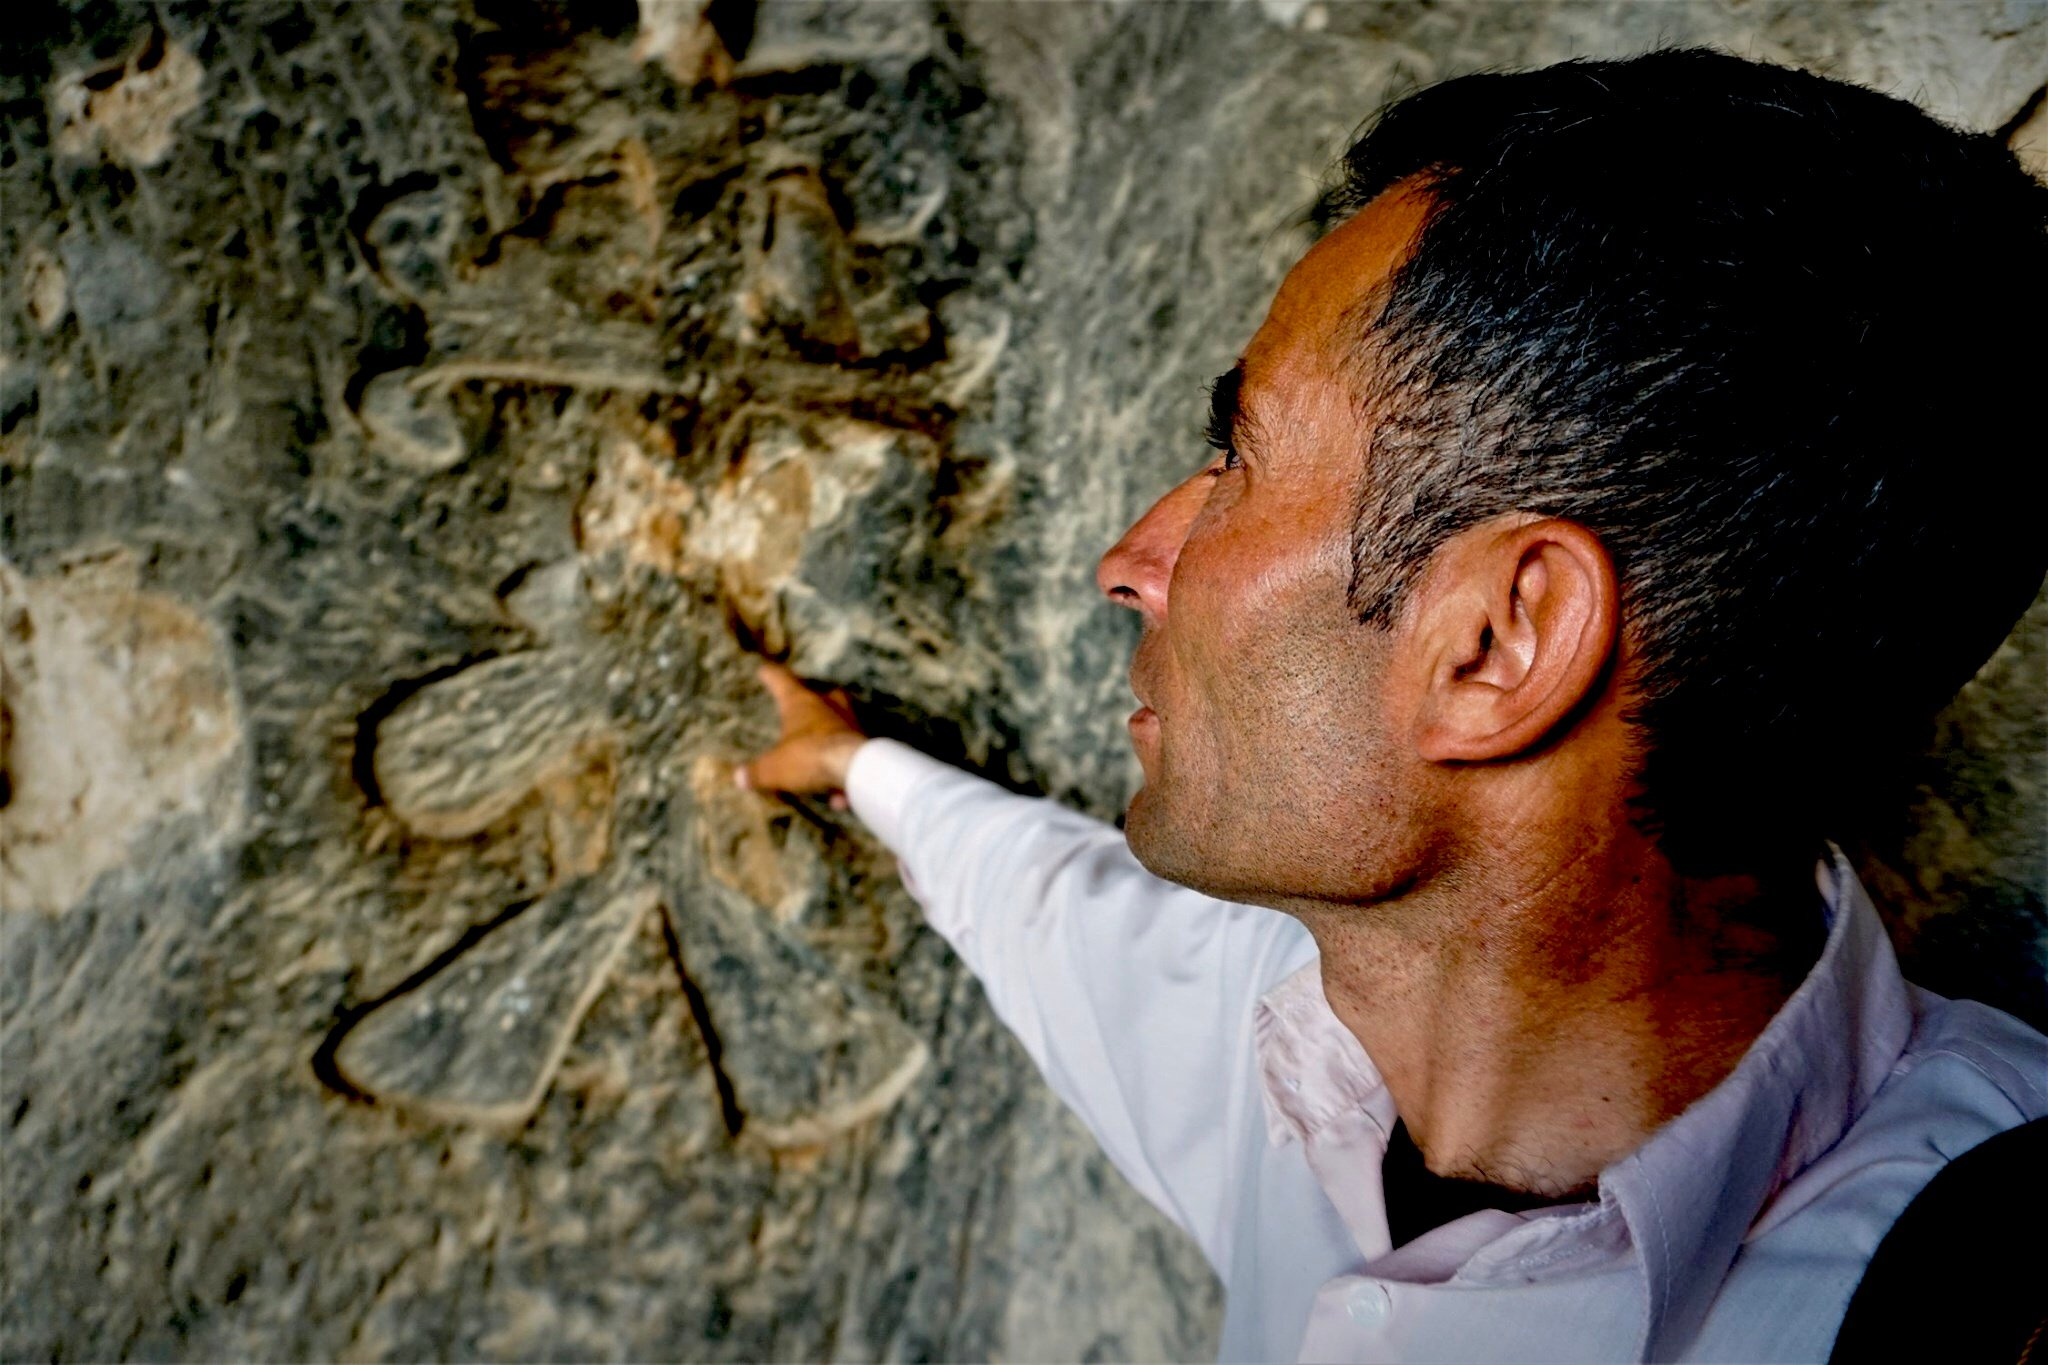 Shepherd Ali points to a leaf-like Christian cross carved on the wall inside one of the caves that would sink under the artificial lake. (Nimet KIRAC/ MEE)